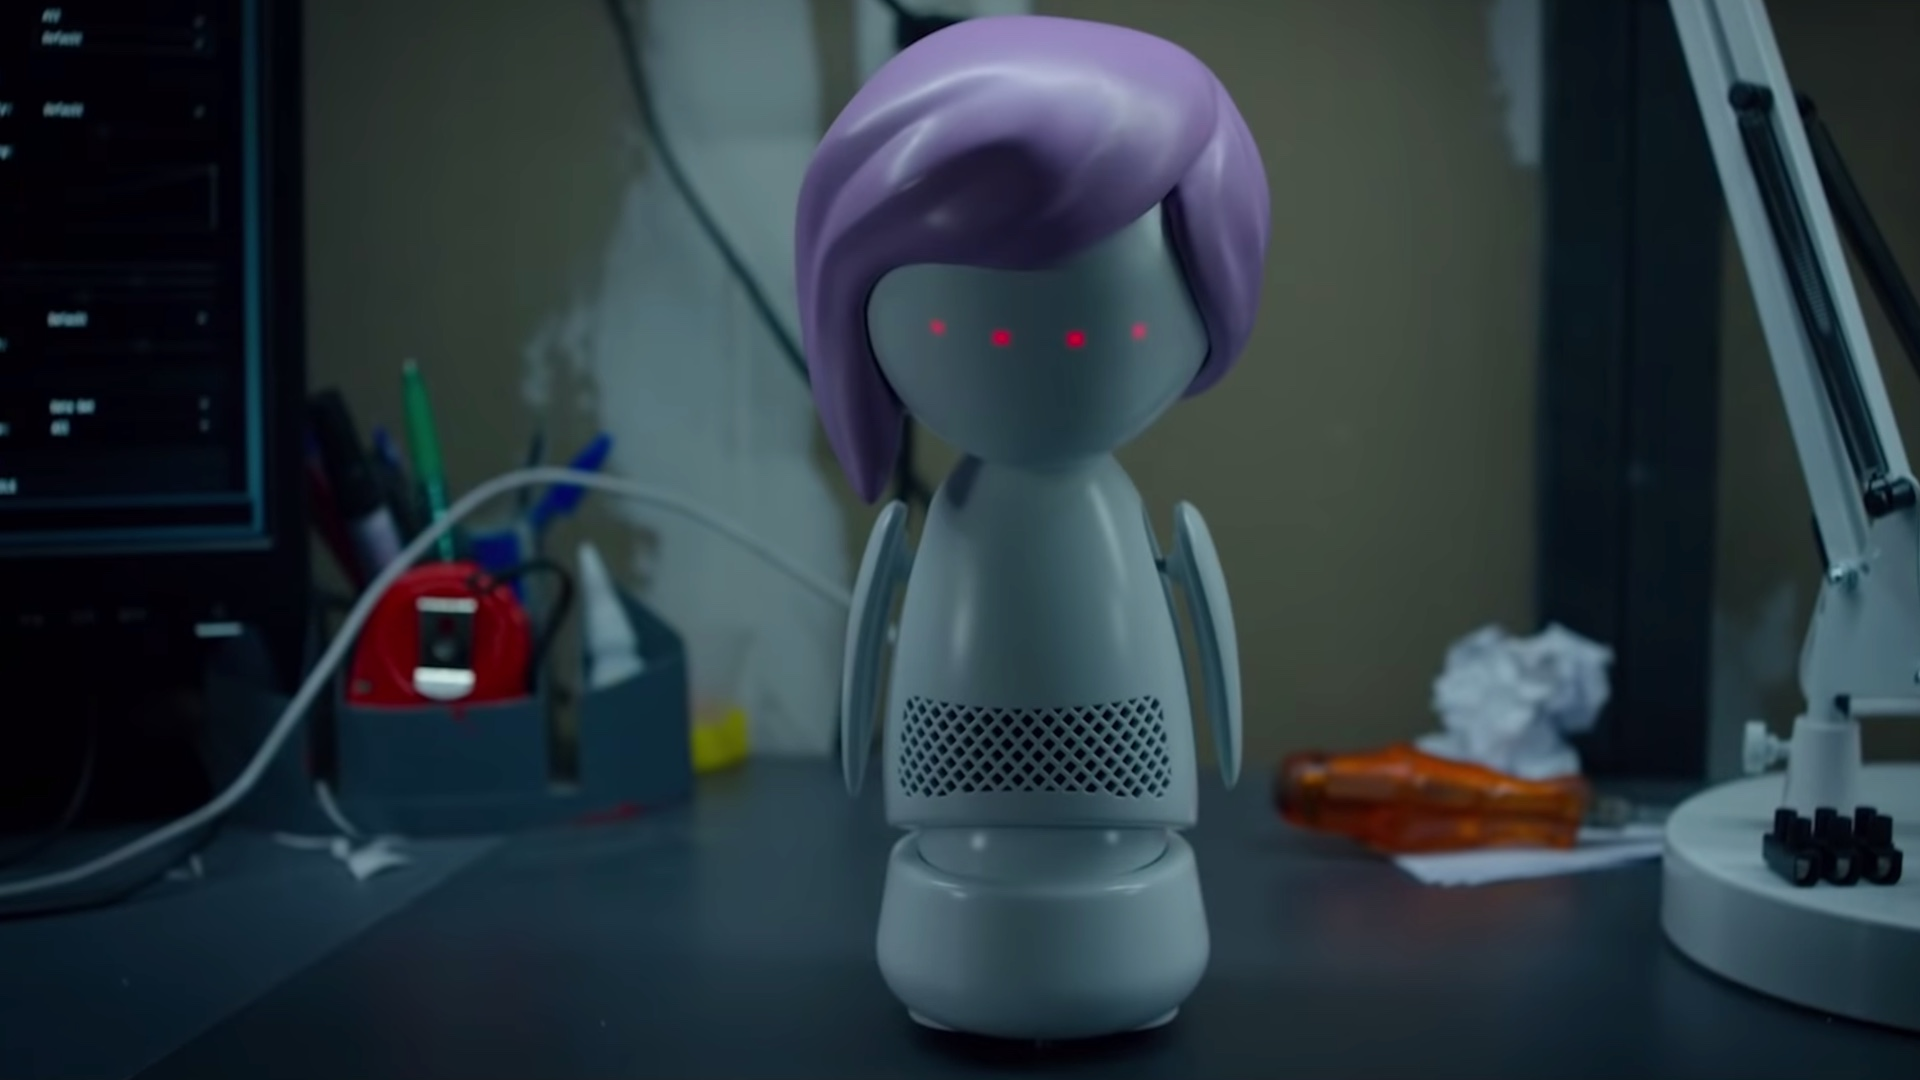 BLACK MIRROR Season 5 Trailers Released for Each of the 3 Episodes